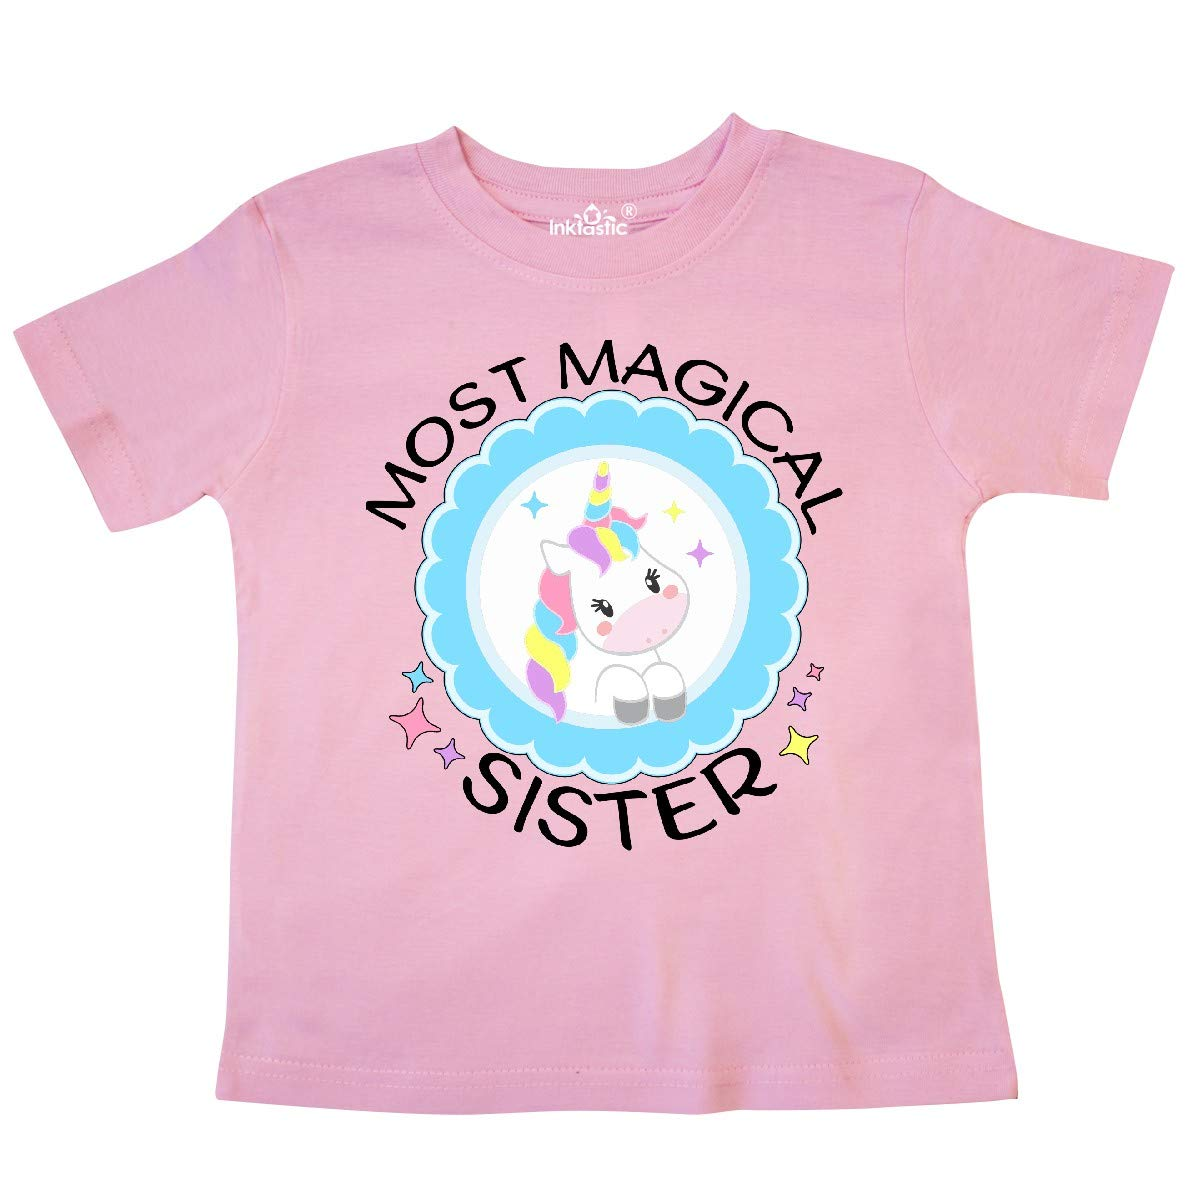 inktastic Most Magical Sister Cute Unicorn Badge Toddler T-Shirt